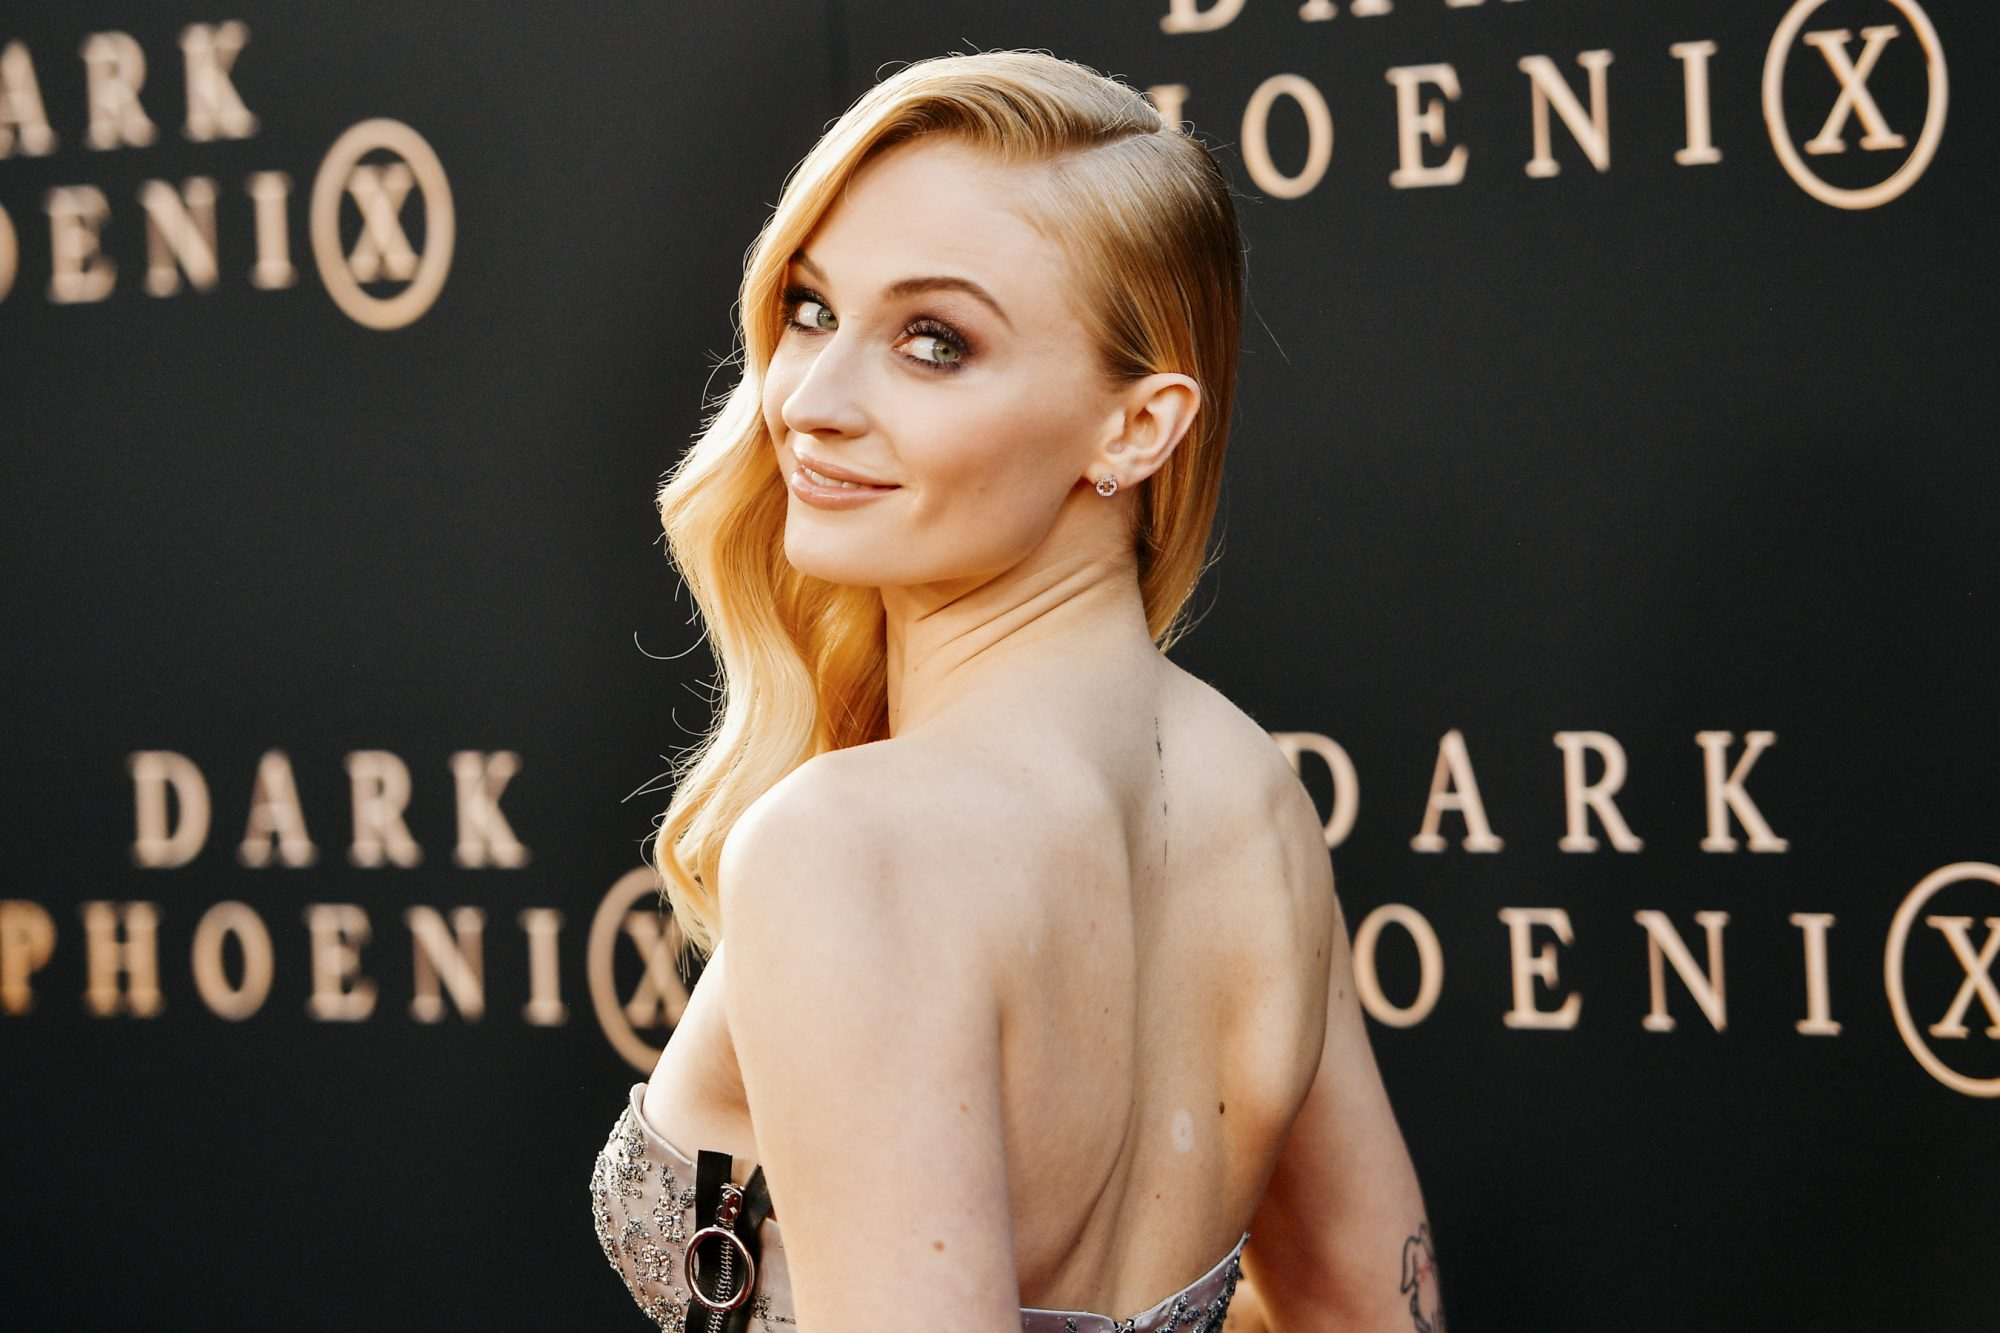 """HOLLYWOOD, CALIFORNIA - JUNE 04: (EDITORS NOTE: Image has been processed using digital filters) Sophie Turner attends the premiere of 20th Century Fox's """"Dark Phoenix"""" at TCL Chinese Theatre on June 04, 2019 in Hollywood, California. (Photo by Matt Winkelmeyer/Getty Images)"""